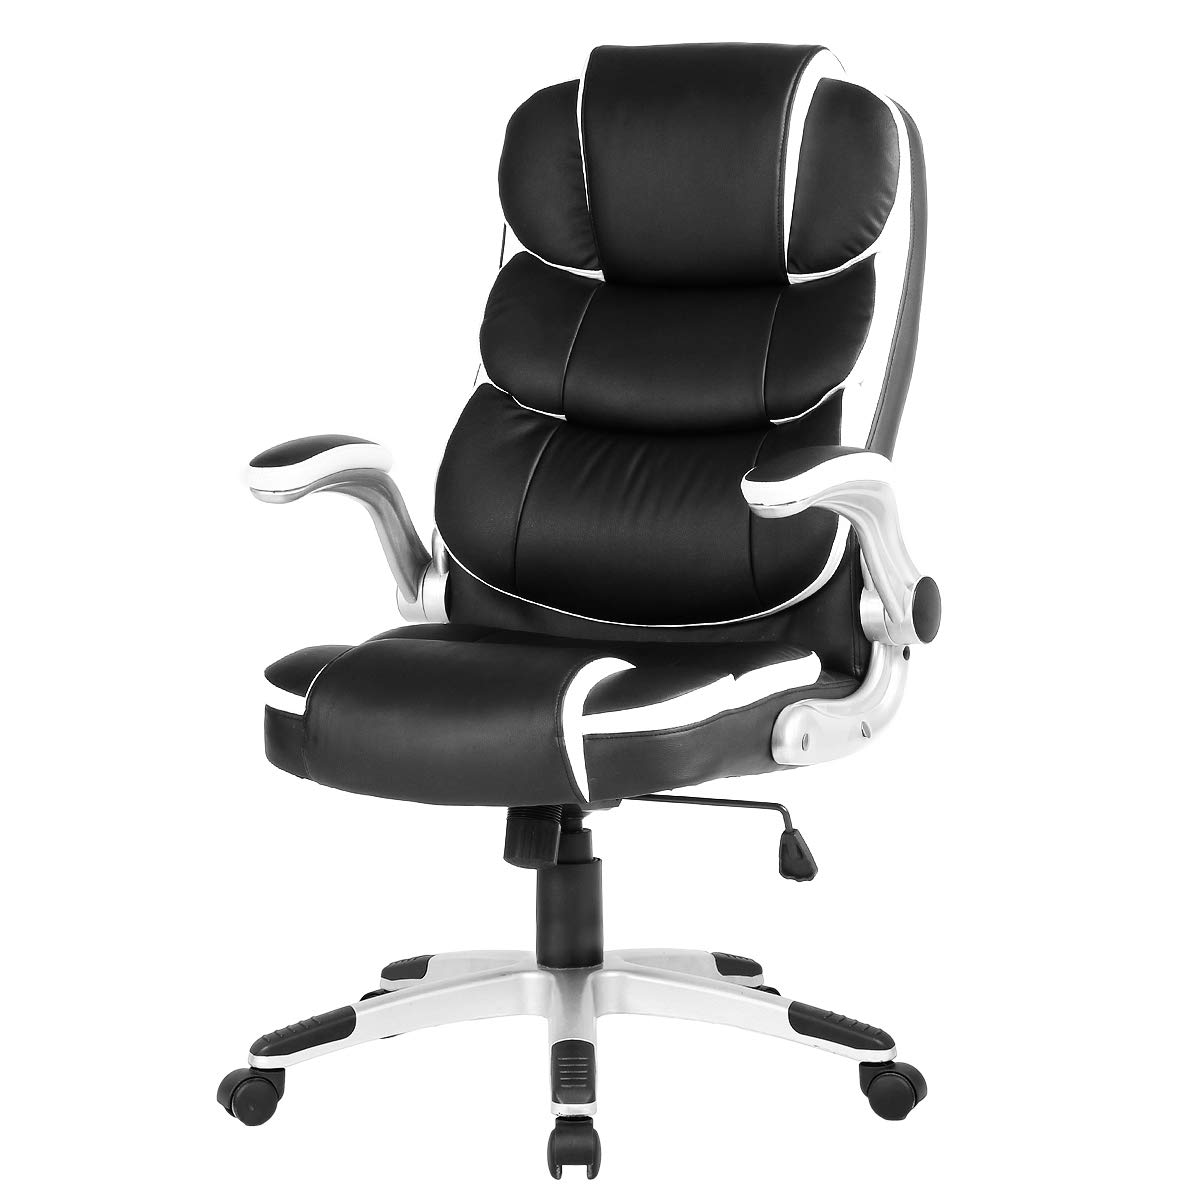 YAMASORO Ergonomic Executive Office Chair High Back Leather Computer Chair Black Office Desk Chair with arms and Wheels Swivel for Heavy People